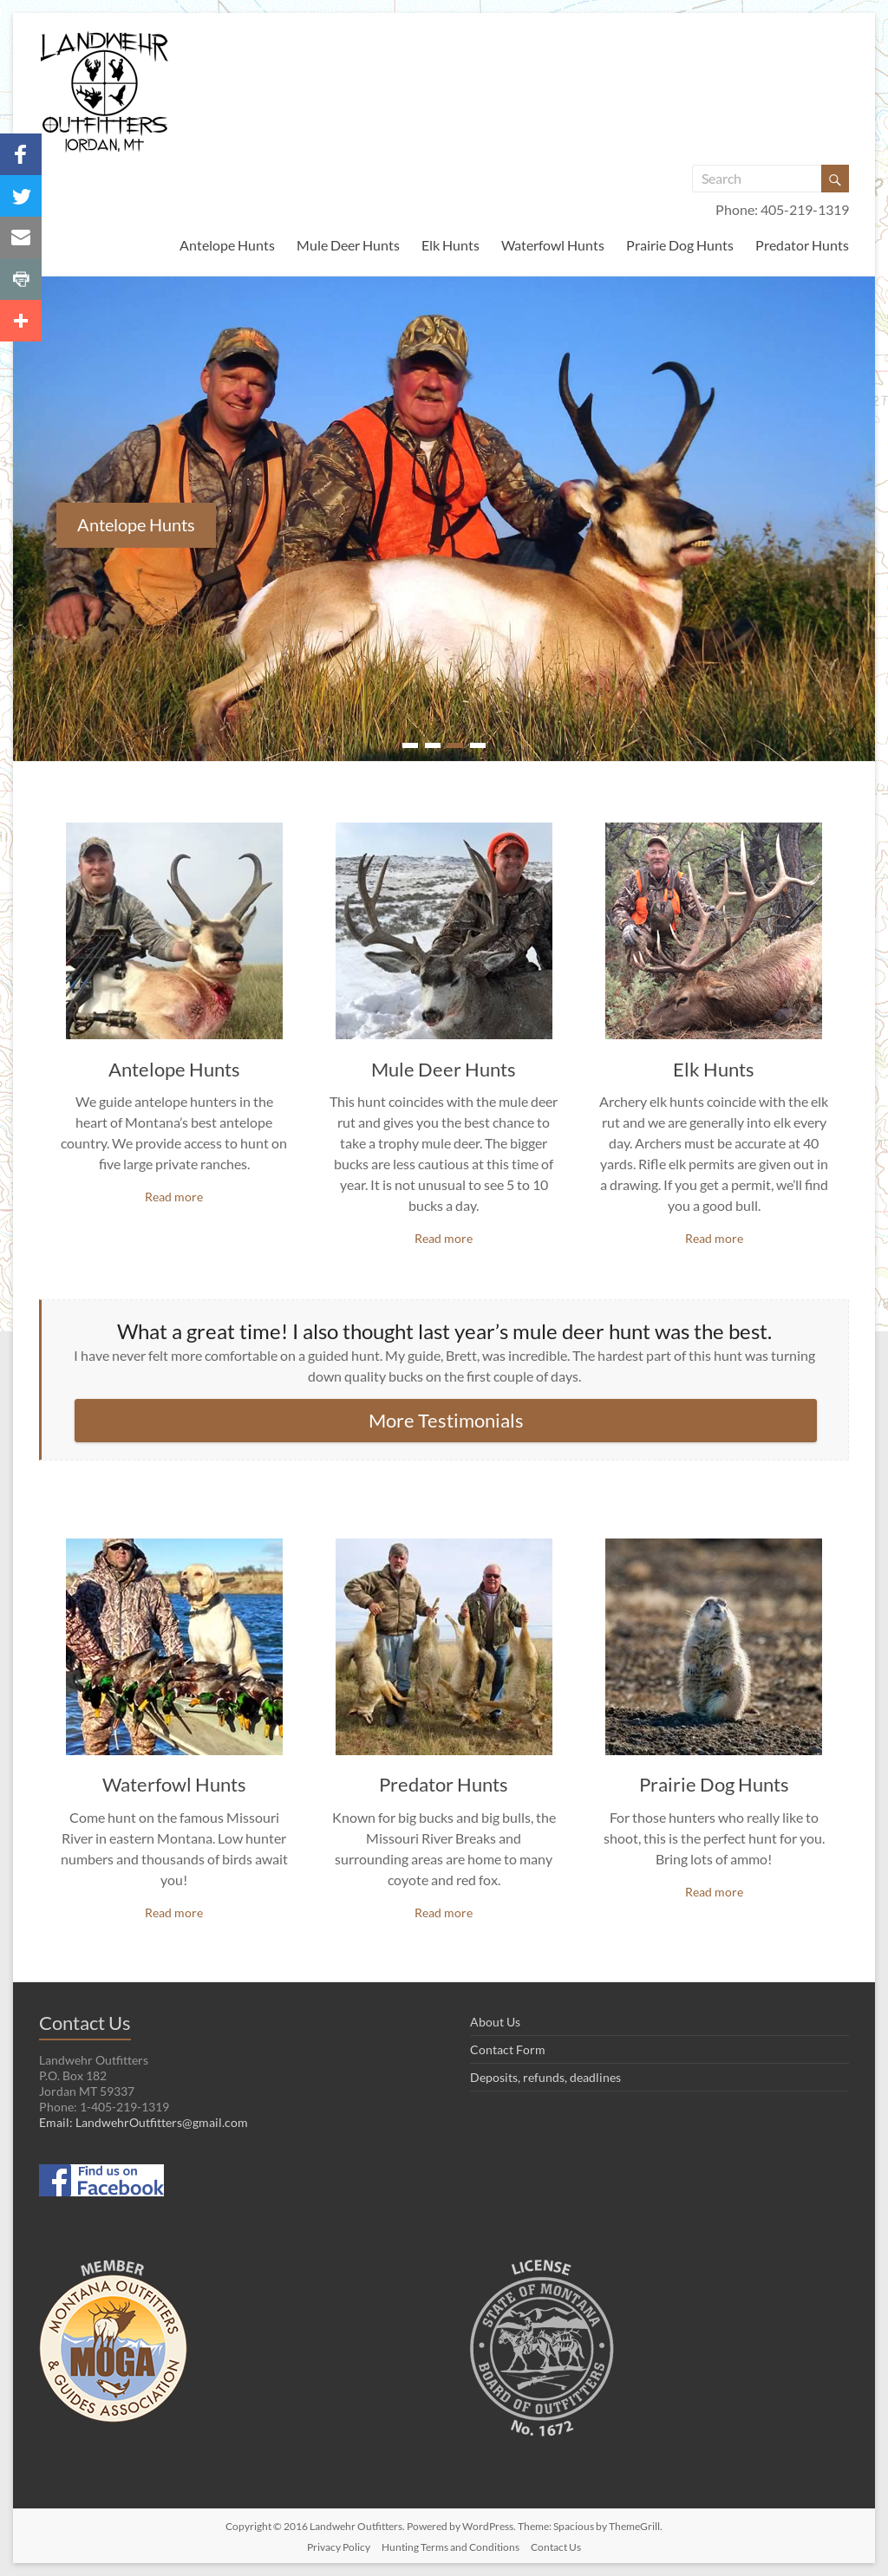 Landwehr Outfitters Competitors, Revenue and Employees